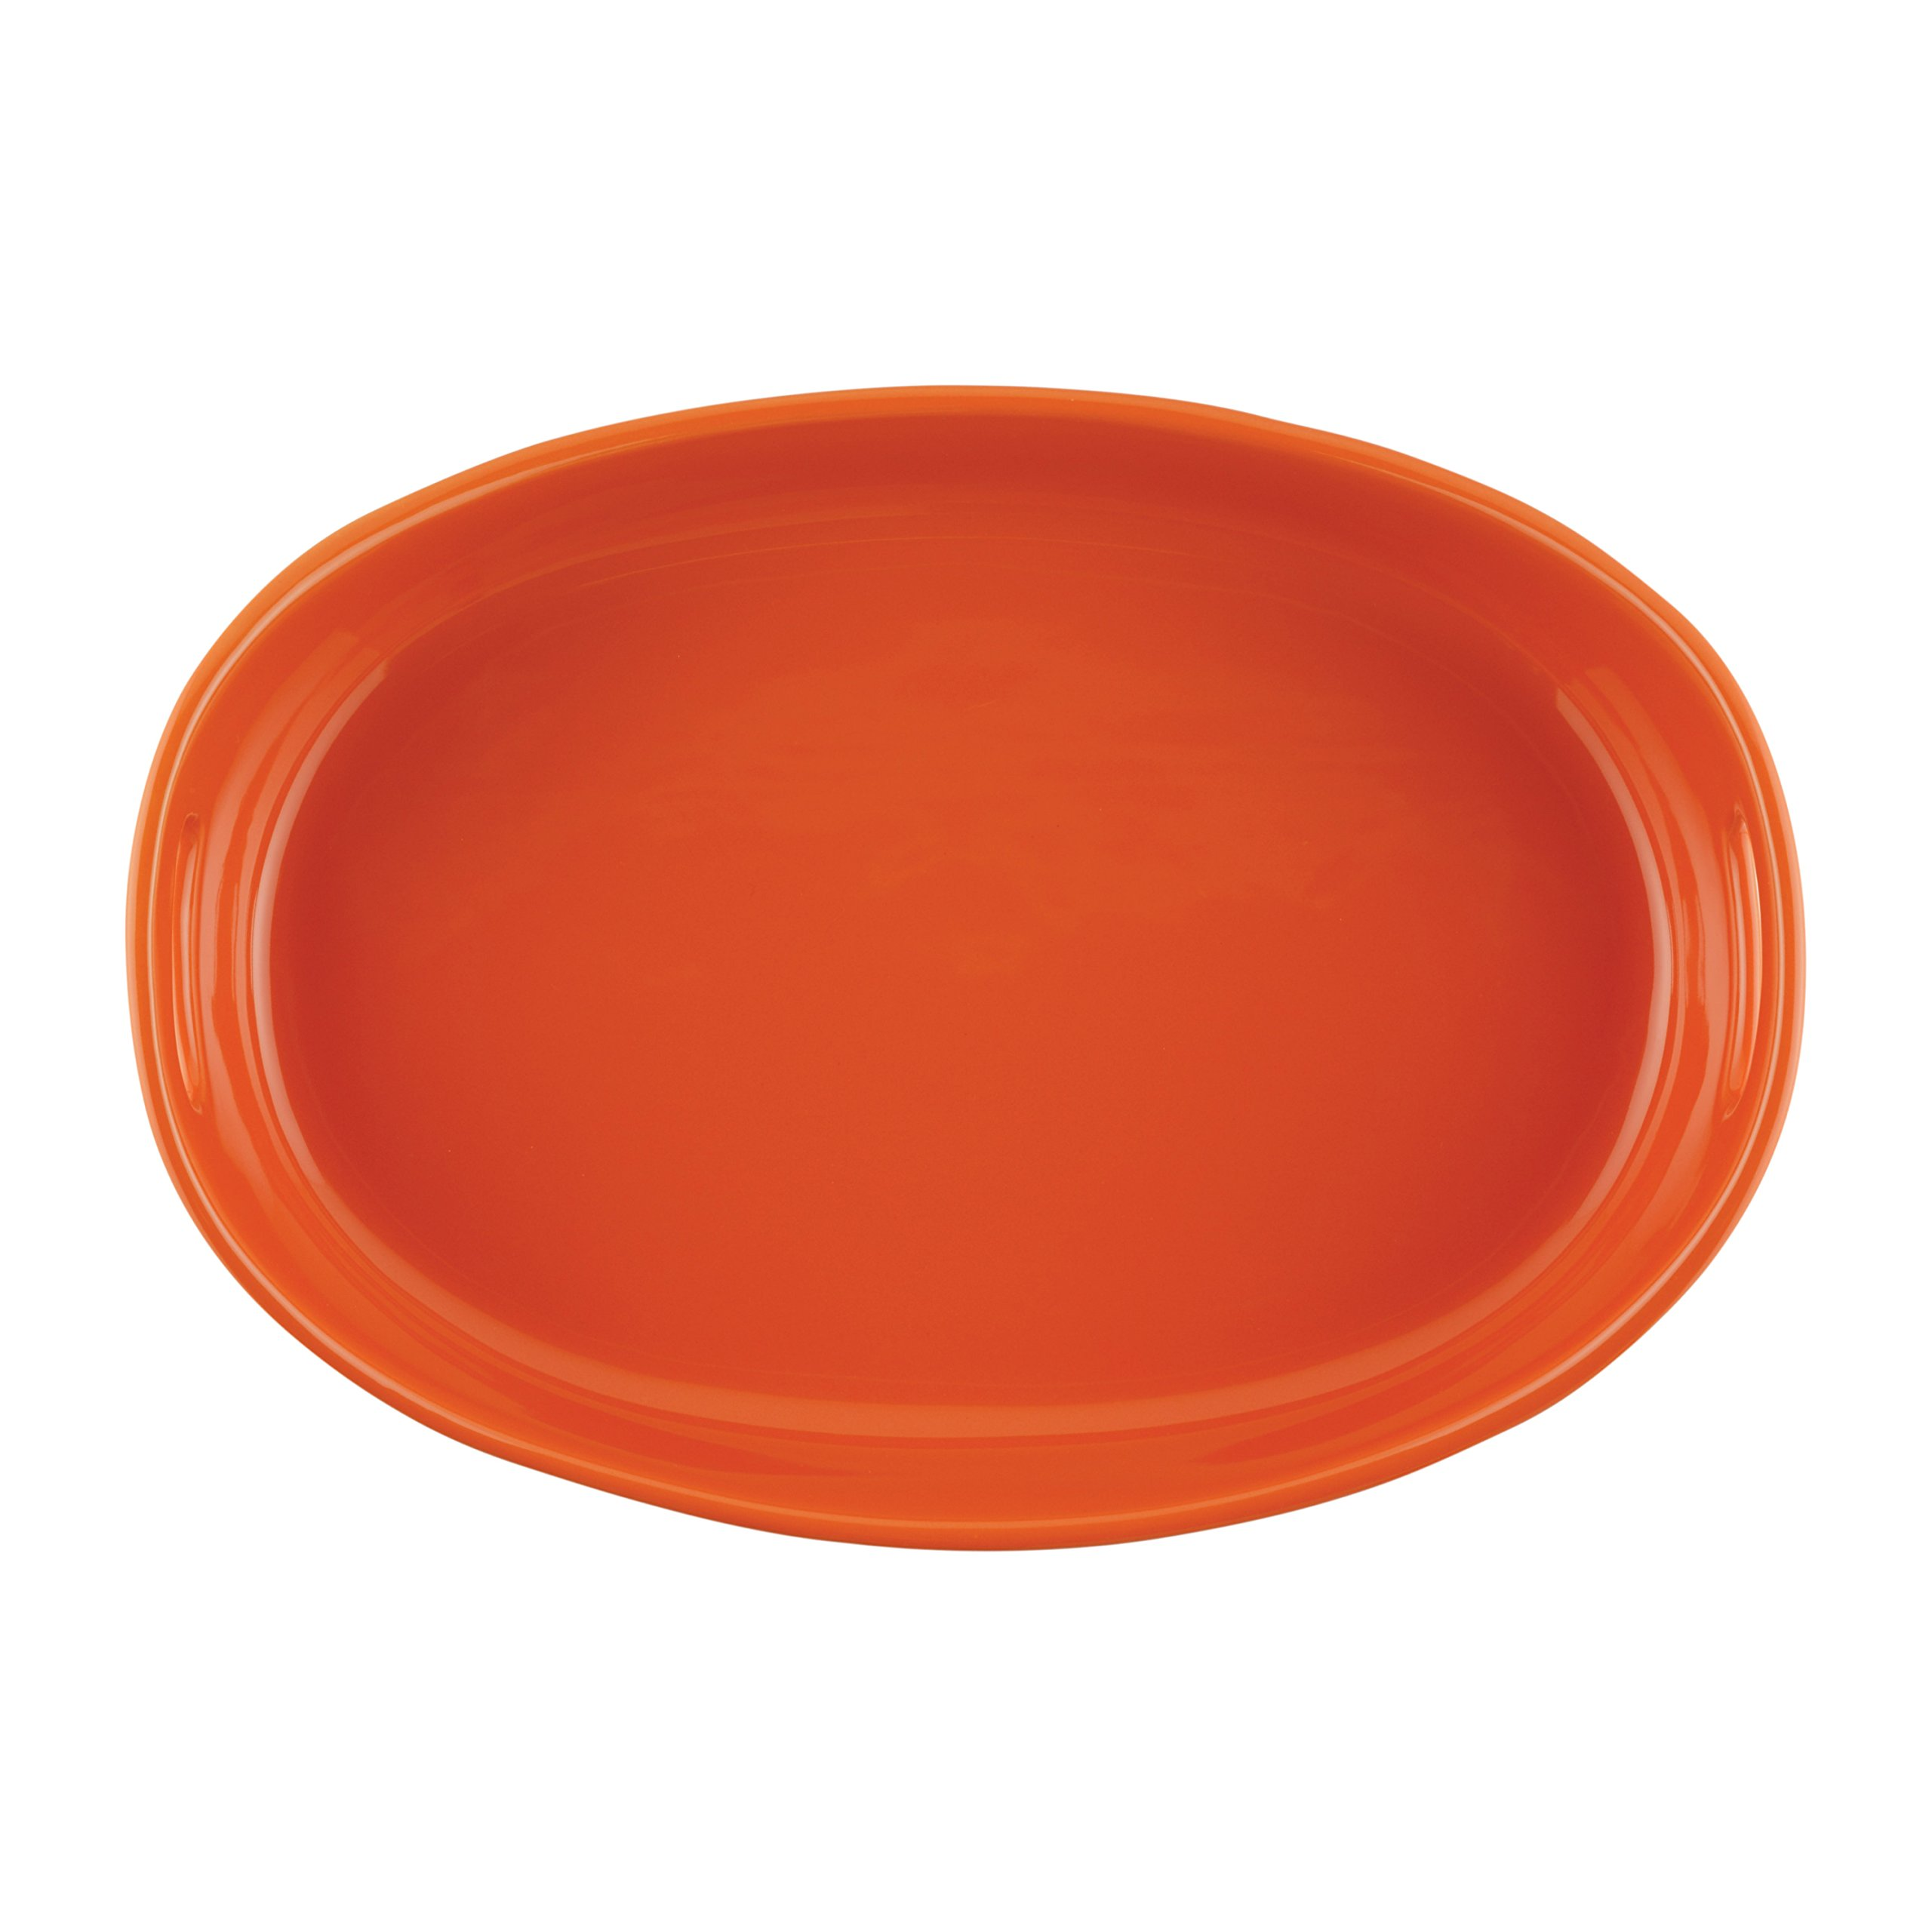 Rachael Ray Stoneware 1.25- and 2.25-Quart Bubble & Brown Oval Baker Set, Orange by Rachael Ray (Image #6)